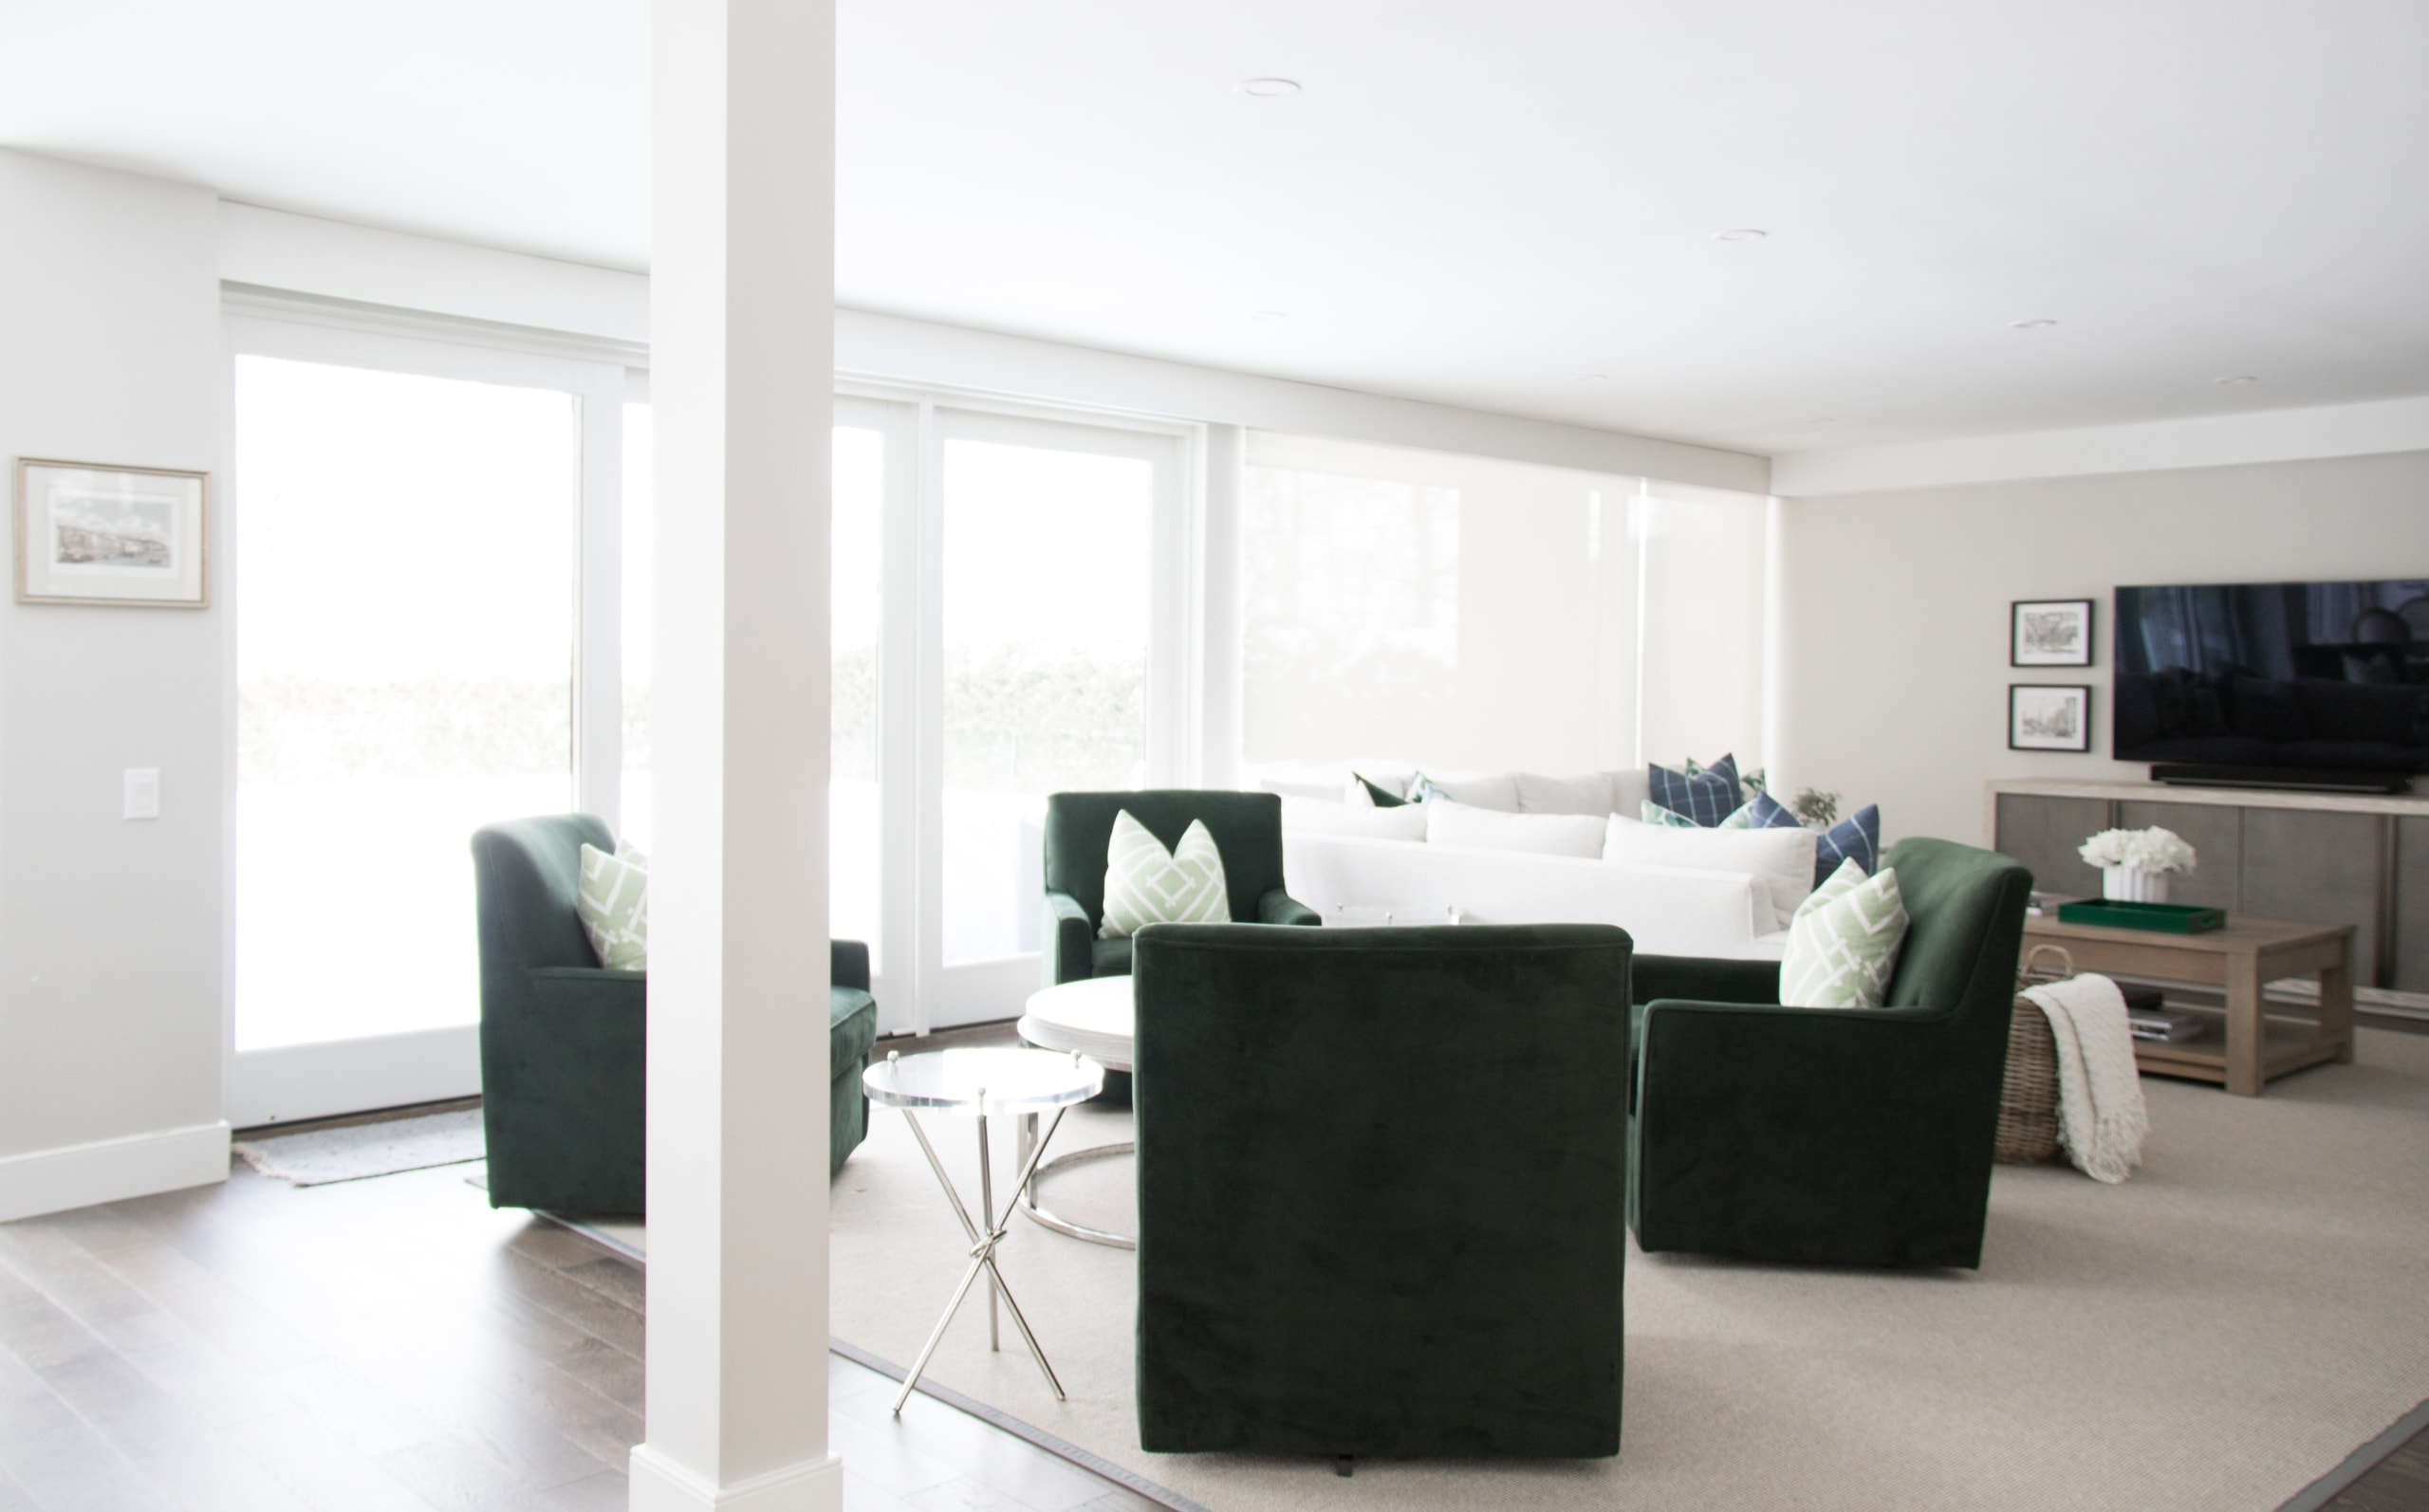 Bright, large living room with green chairs